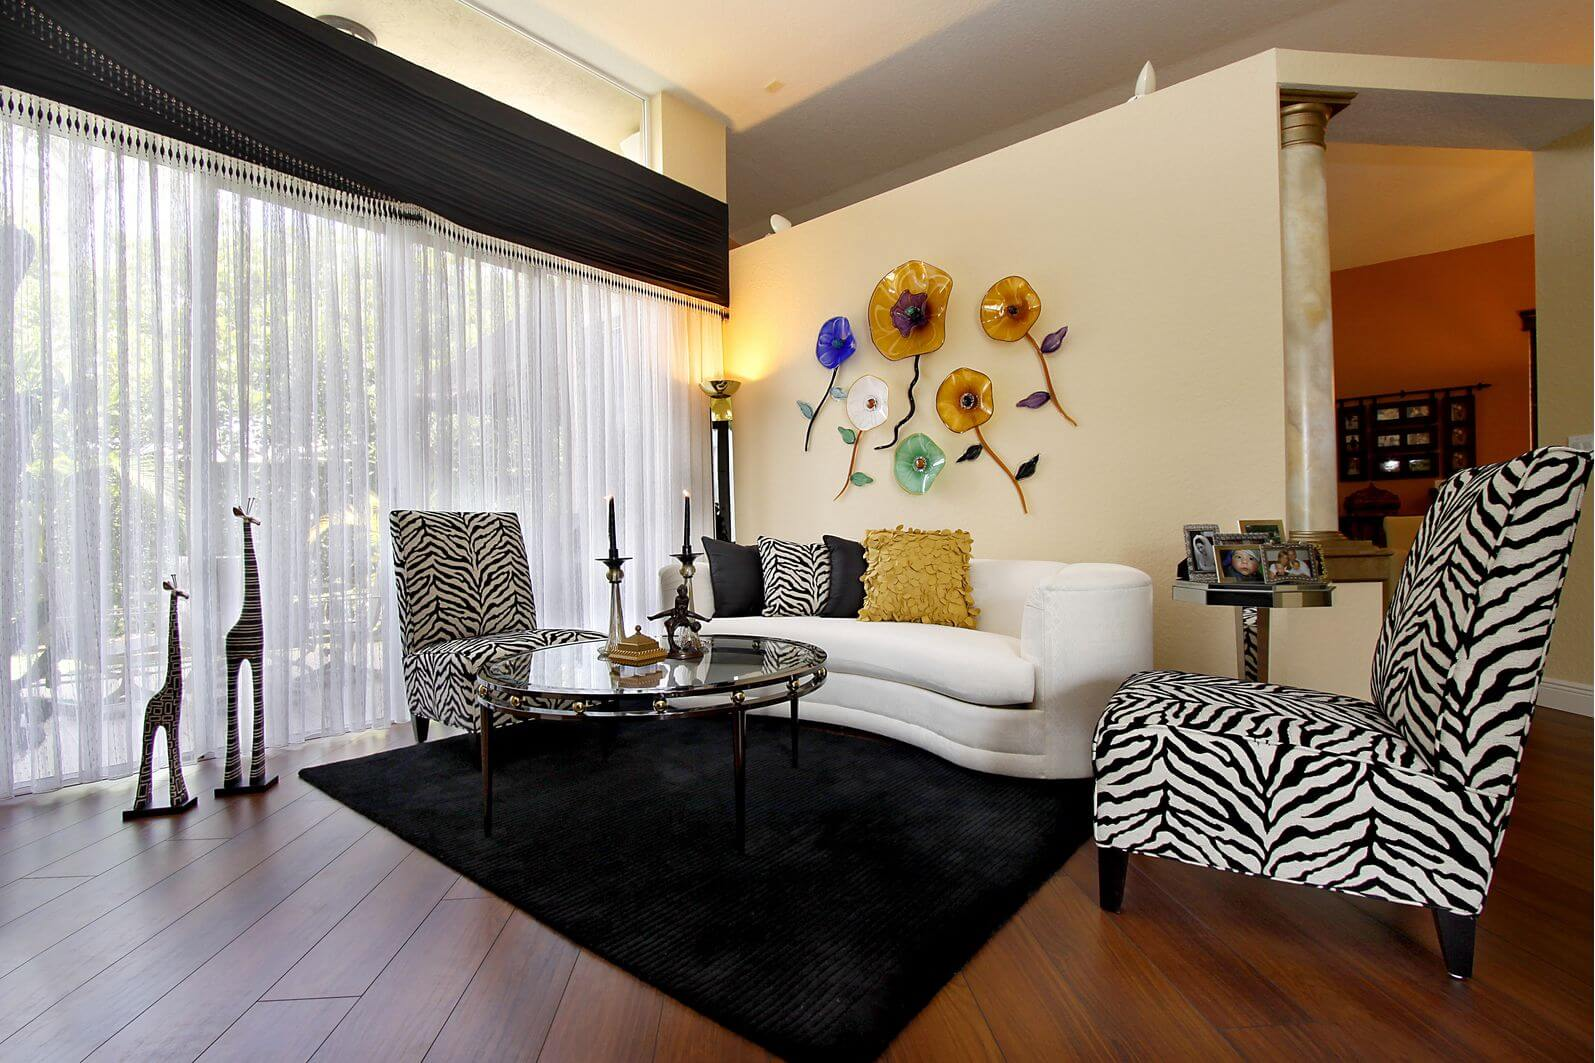 Small living room with 2 zebra print armless chairs, one small white sofa, glass coffee table and black floor rug on wood flooring. This is a good example of zebra print furniture in a small living room design that looks good (i.e. not overdone).